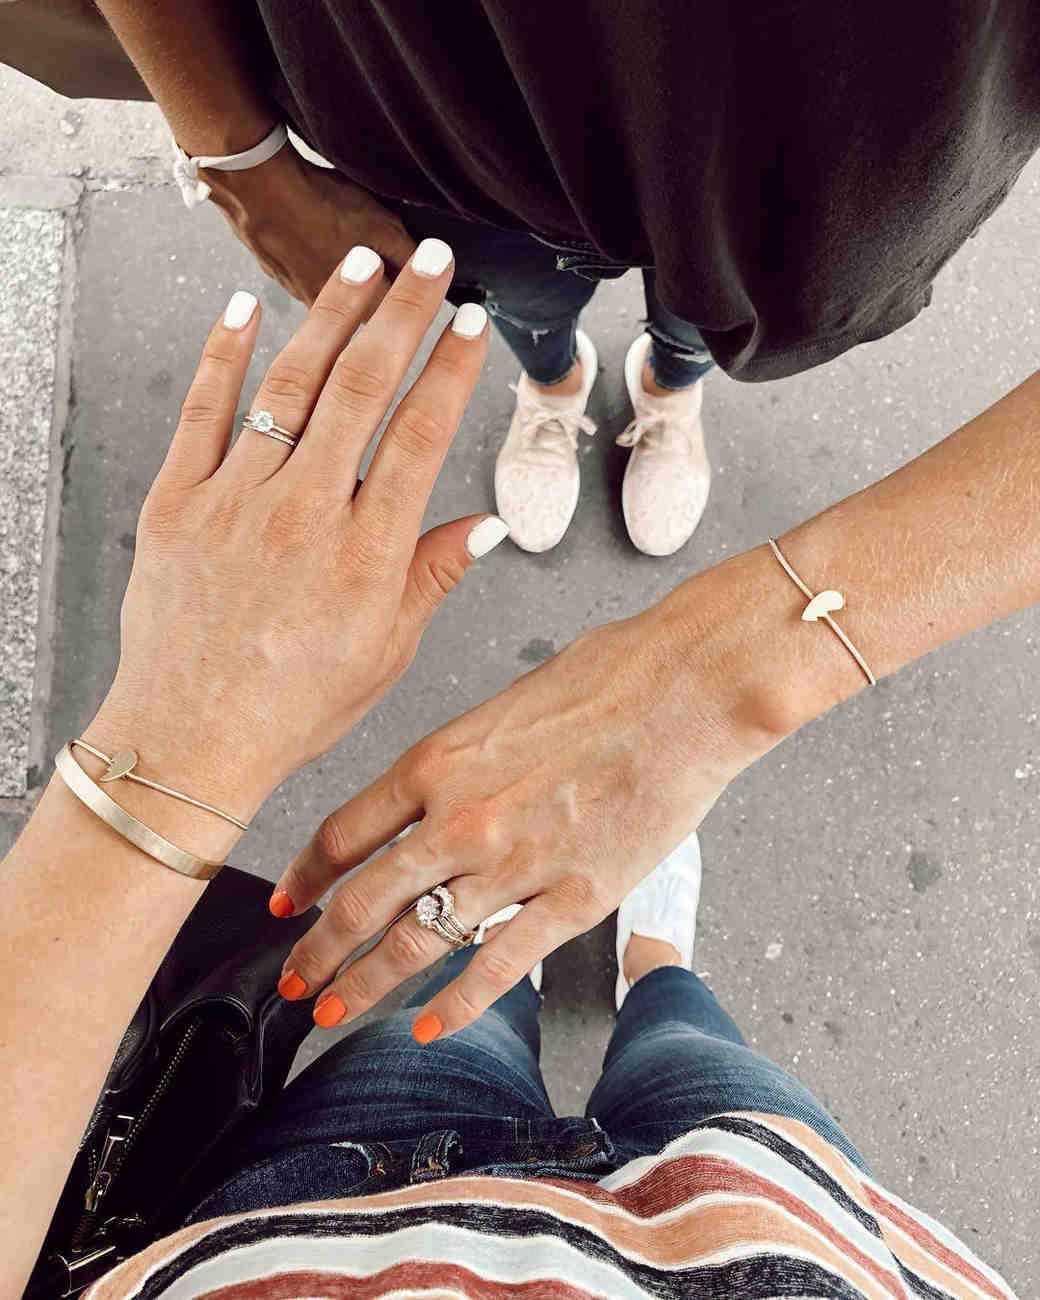 engagement ring selfie best friends showing rings together